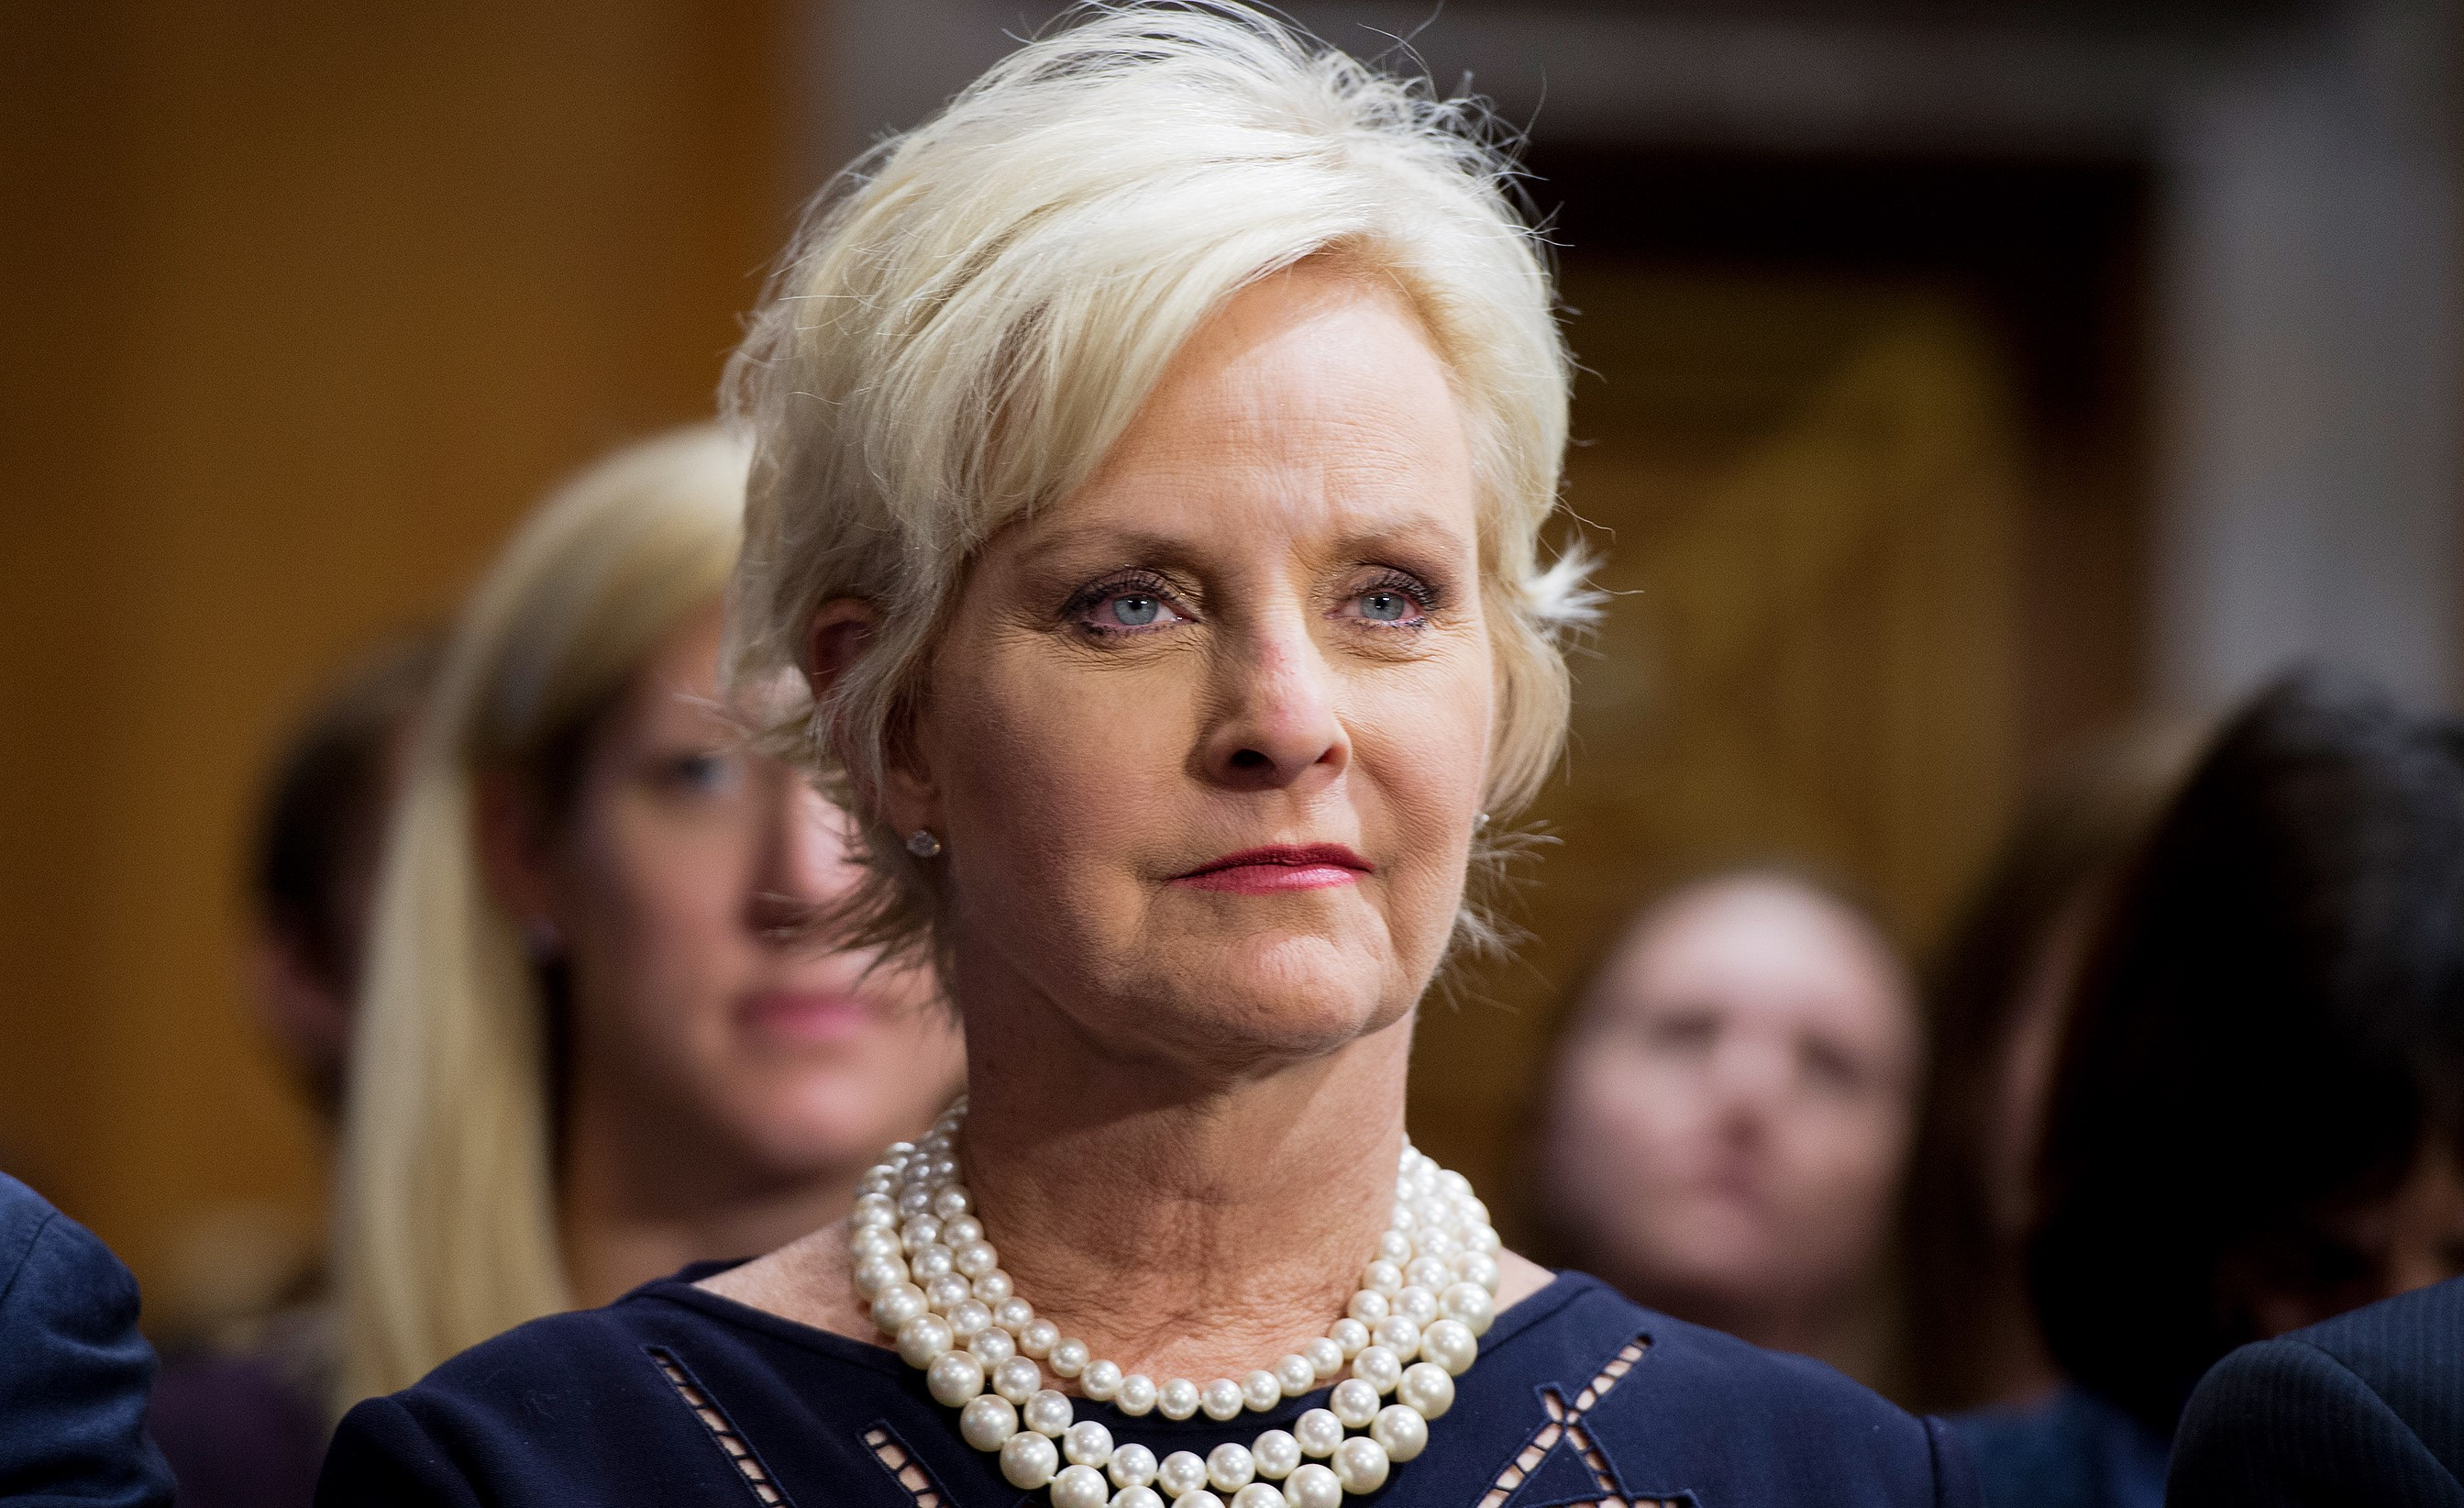 cindy mccain Now What Now What